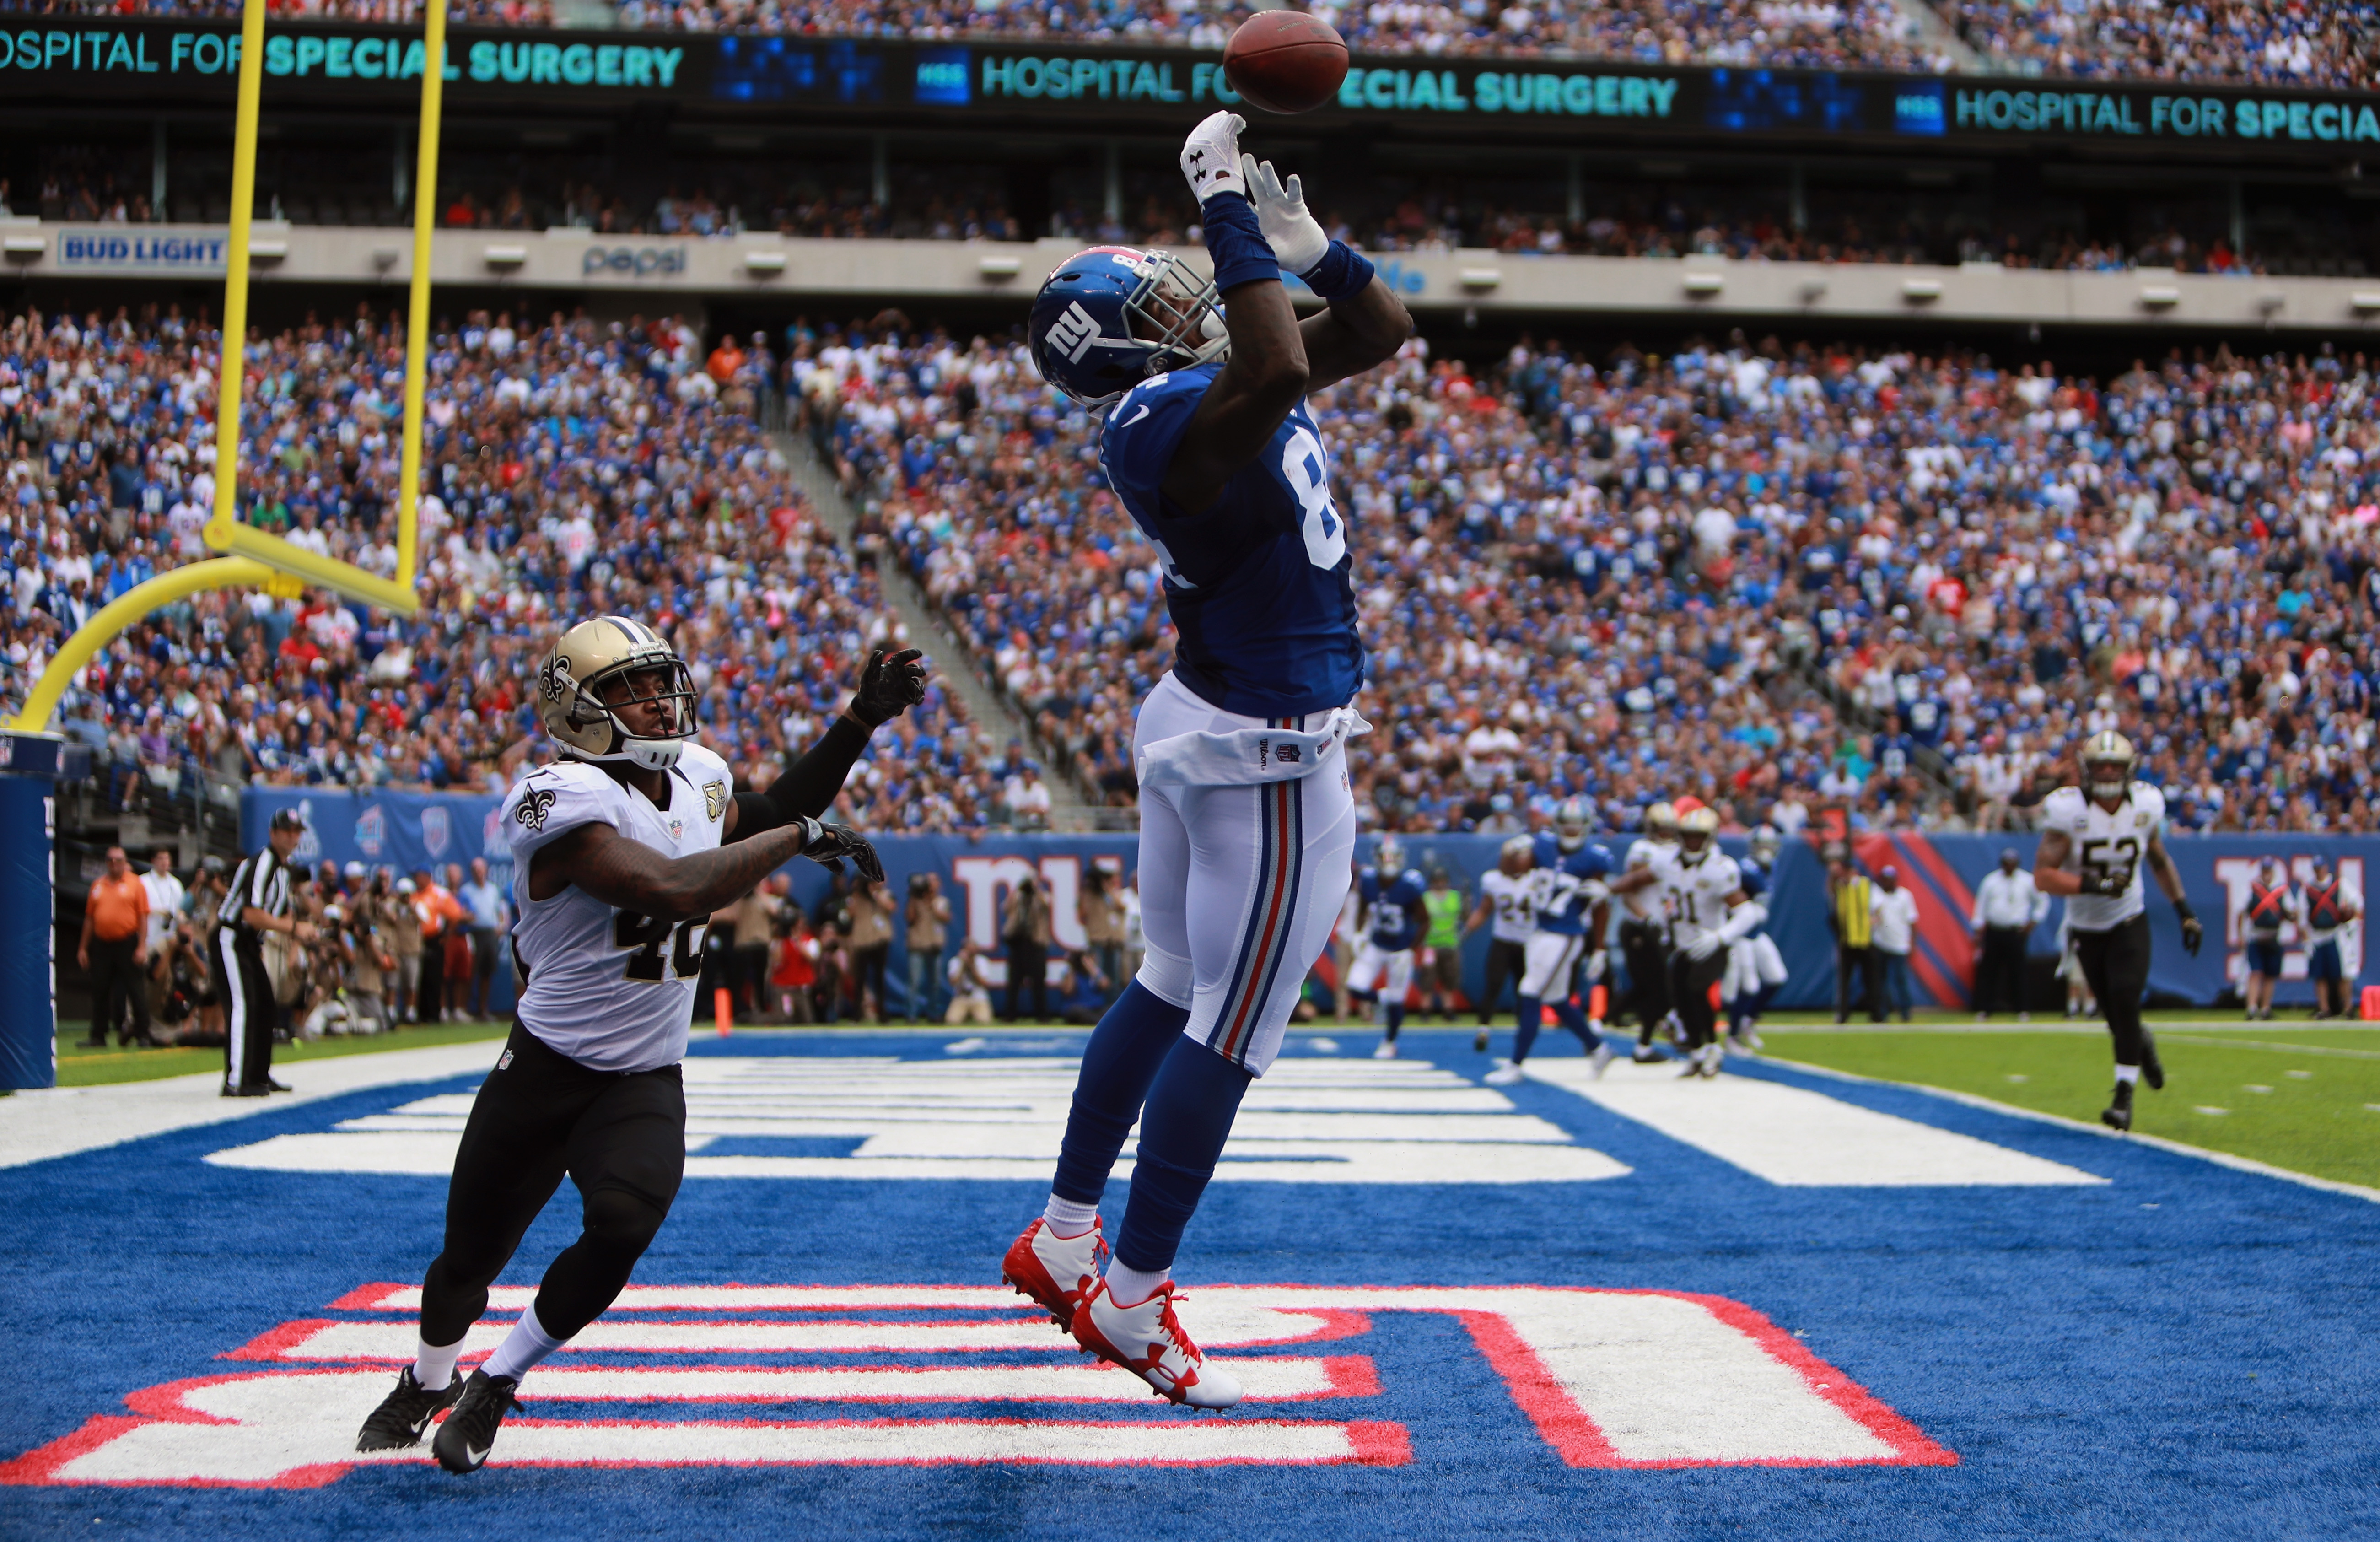 Ex-Giant Larry Donnell signs with Baltimore Ravens